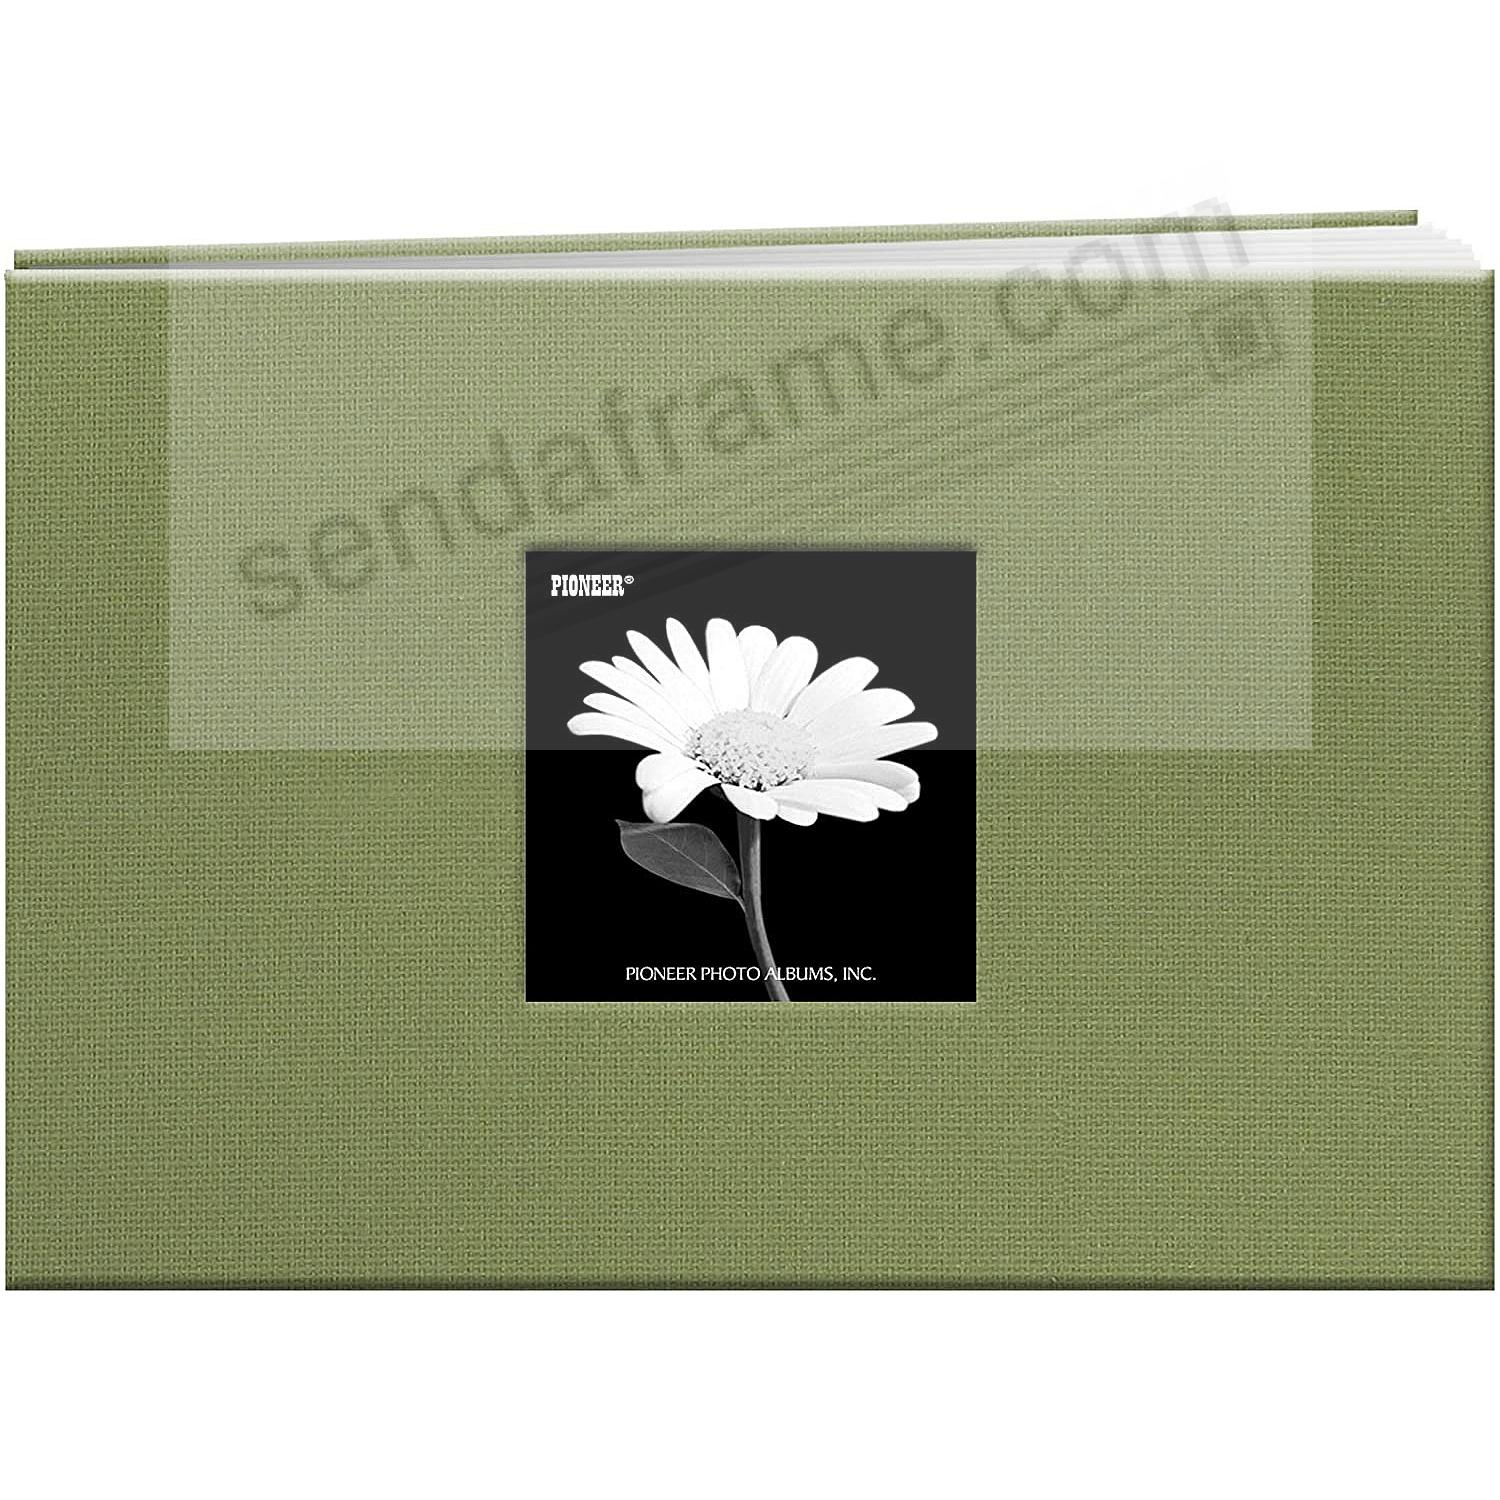 SAGE-GREEN Fabric Cover Scrapbook 7x5 album by Pioneer®